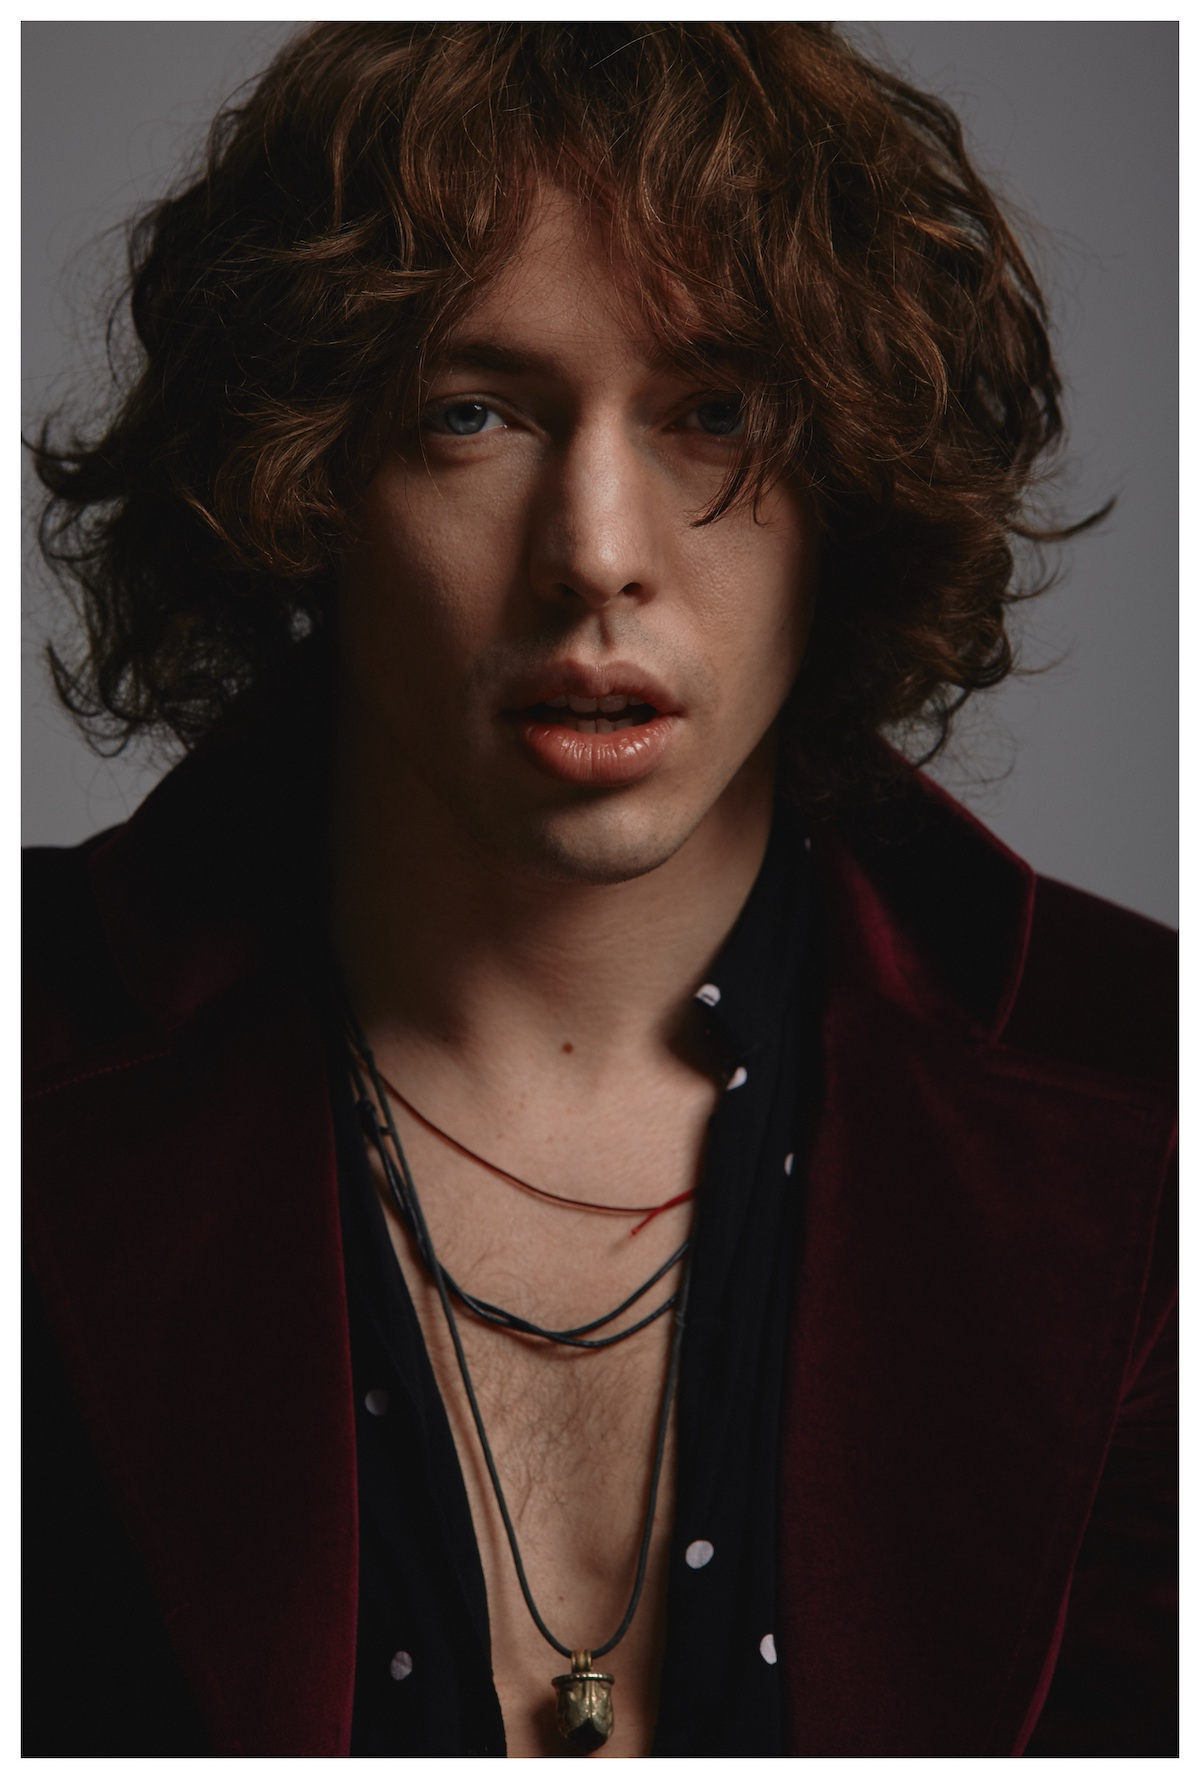 Barns Courtney (Credit Tom Oxley)